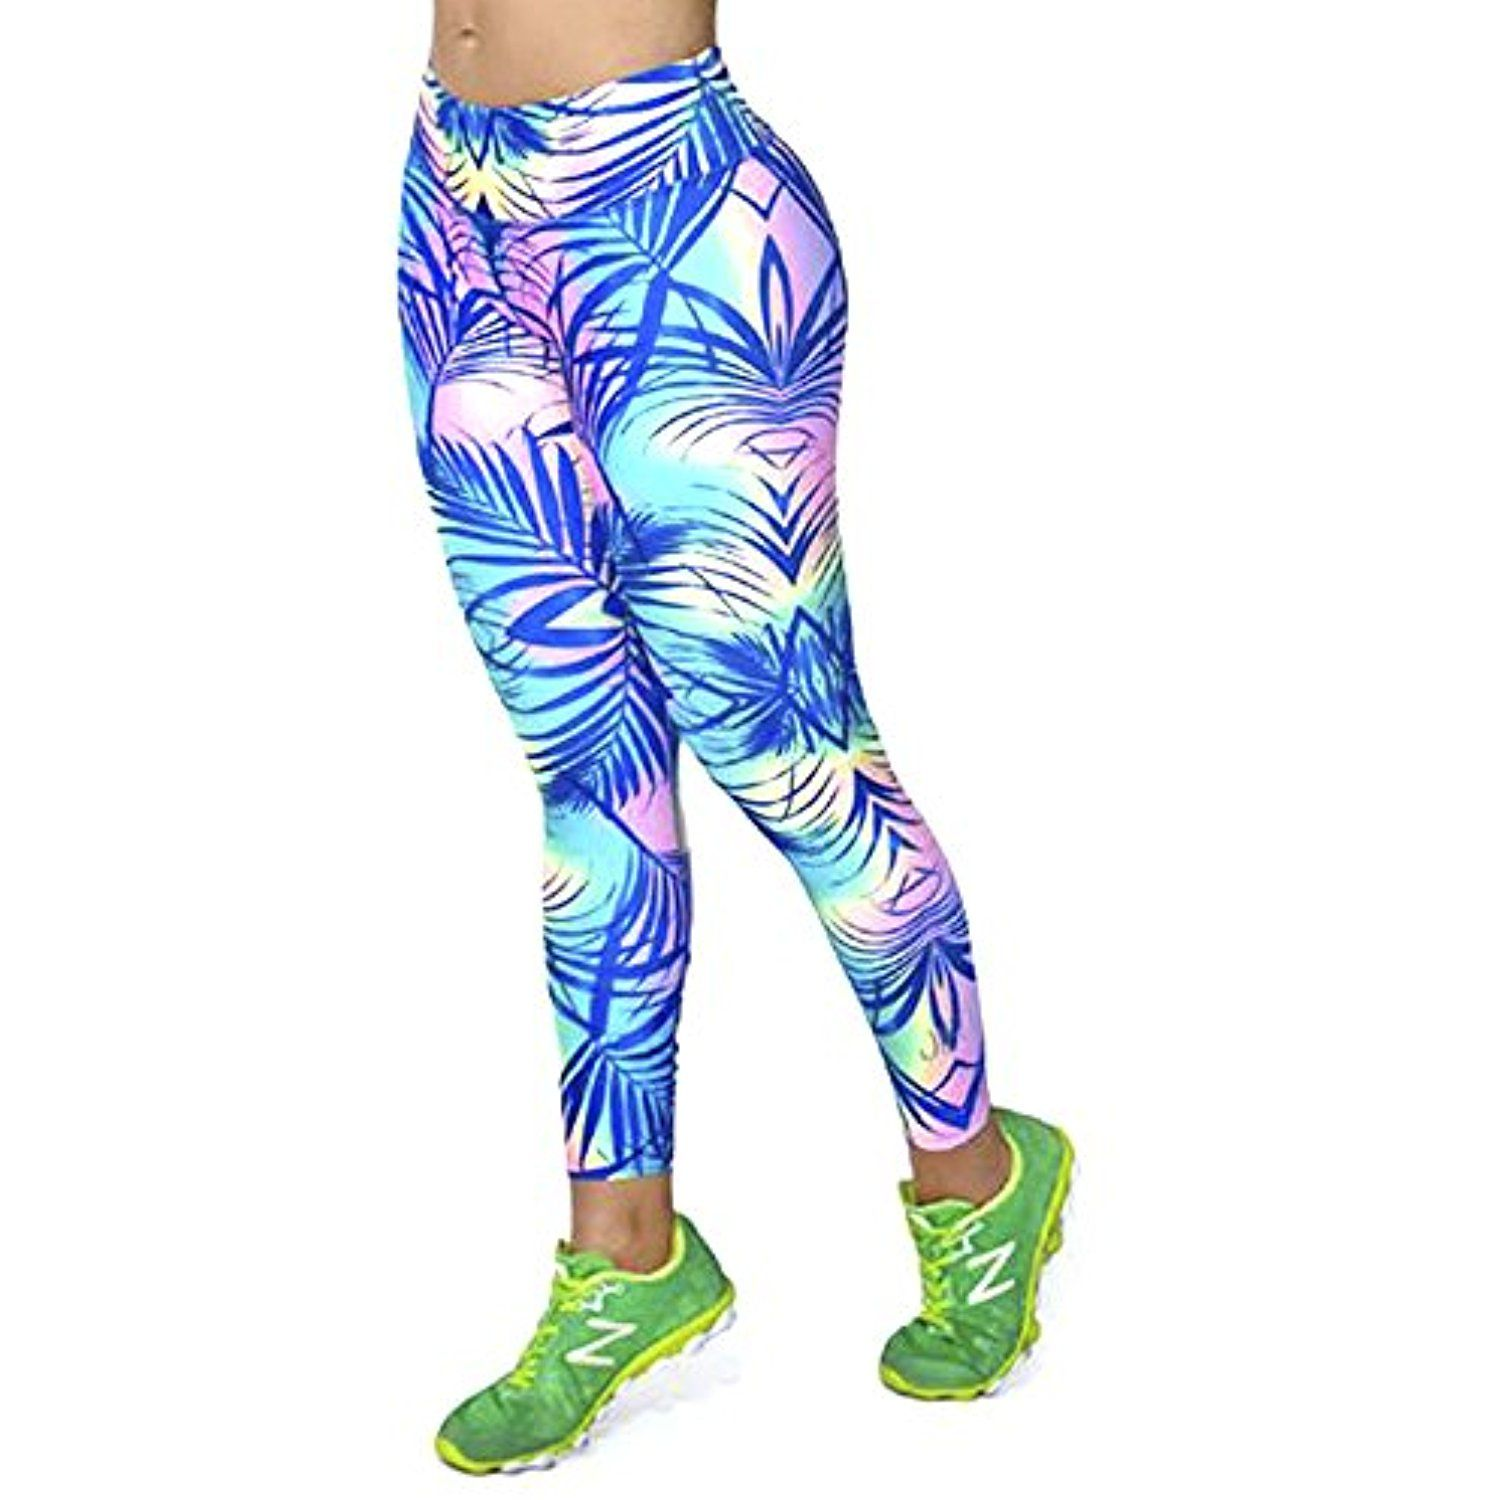 9391985fd5546 Workout Tights by Difit Sportwear -Yoga #Clothing | Clothing ...